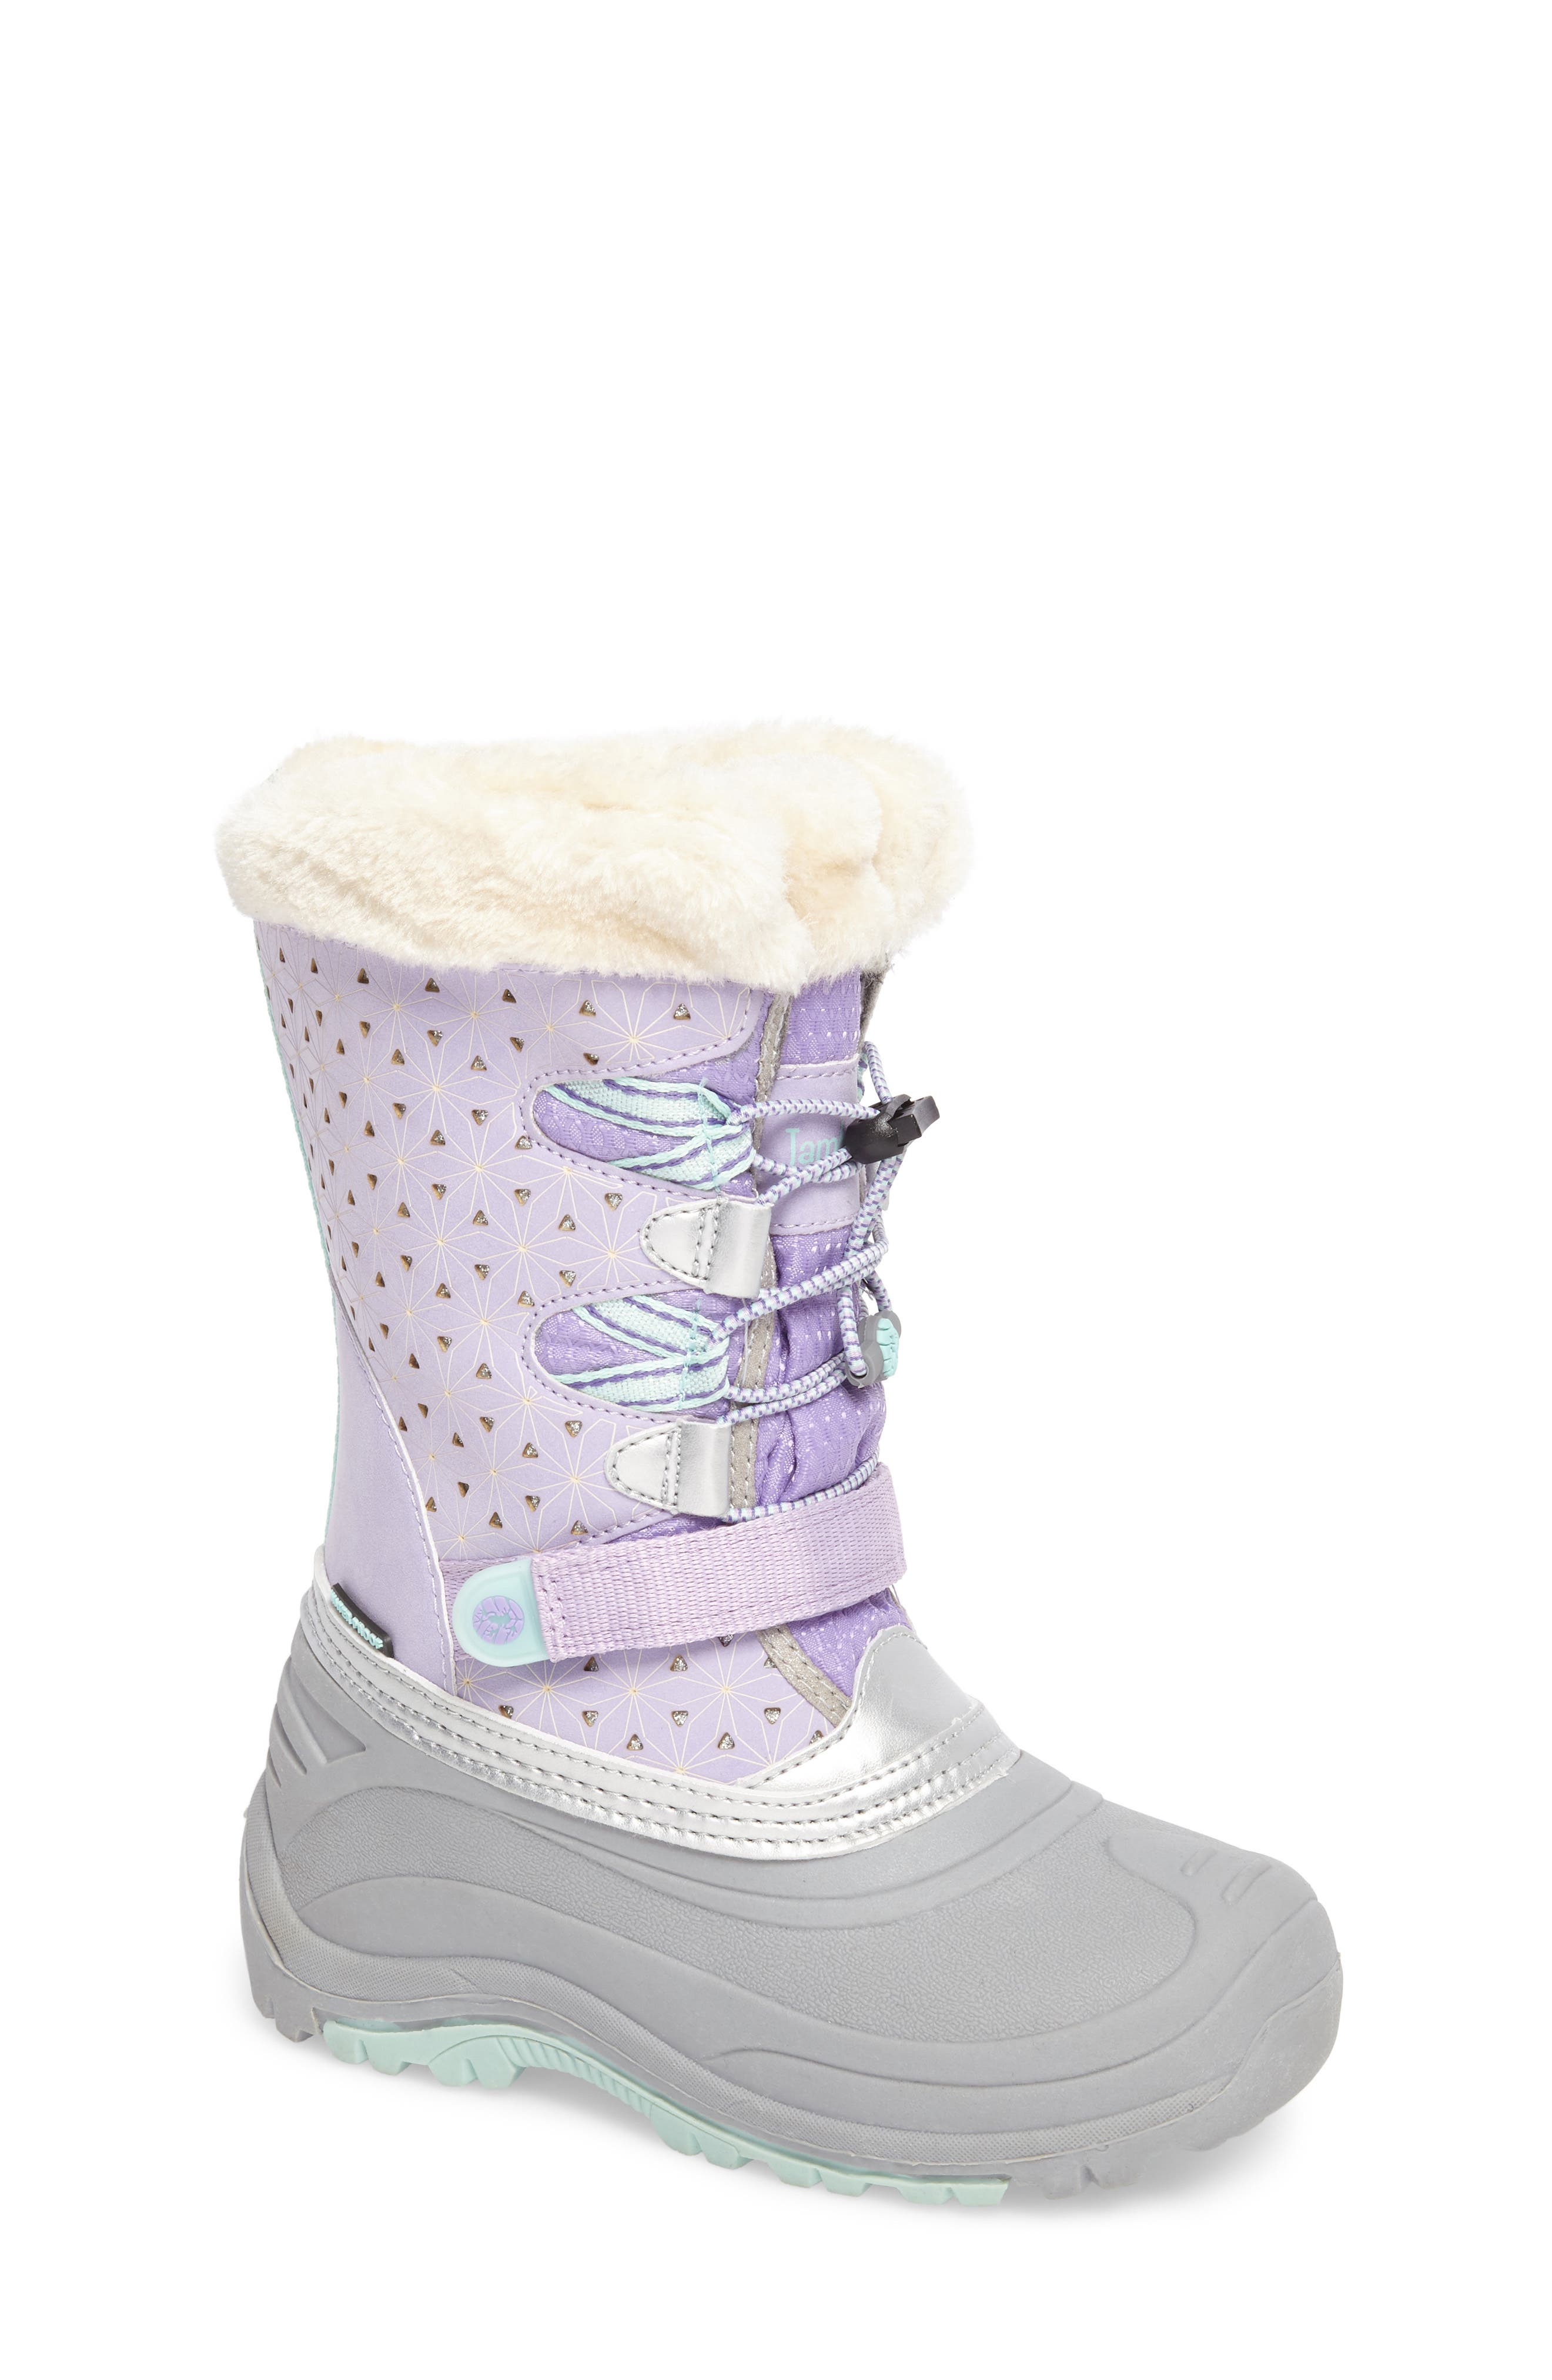 'Venom' Waterproof Insulated Snow Boot,                             Main thumbnail 2, color,